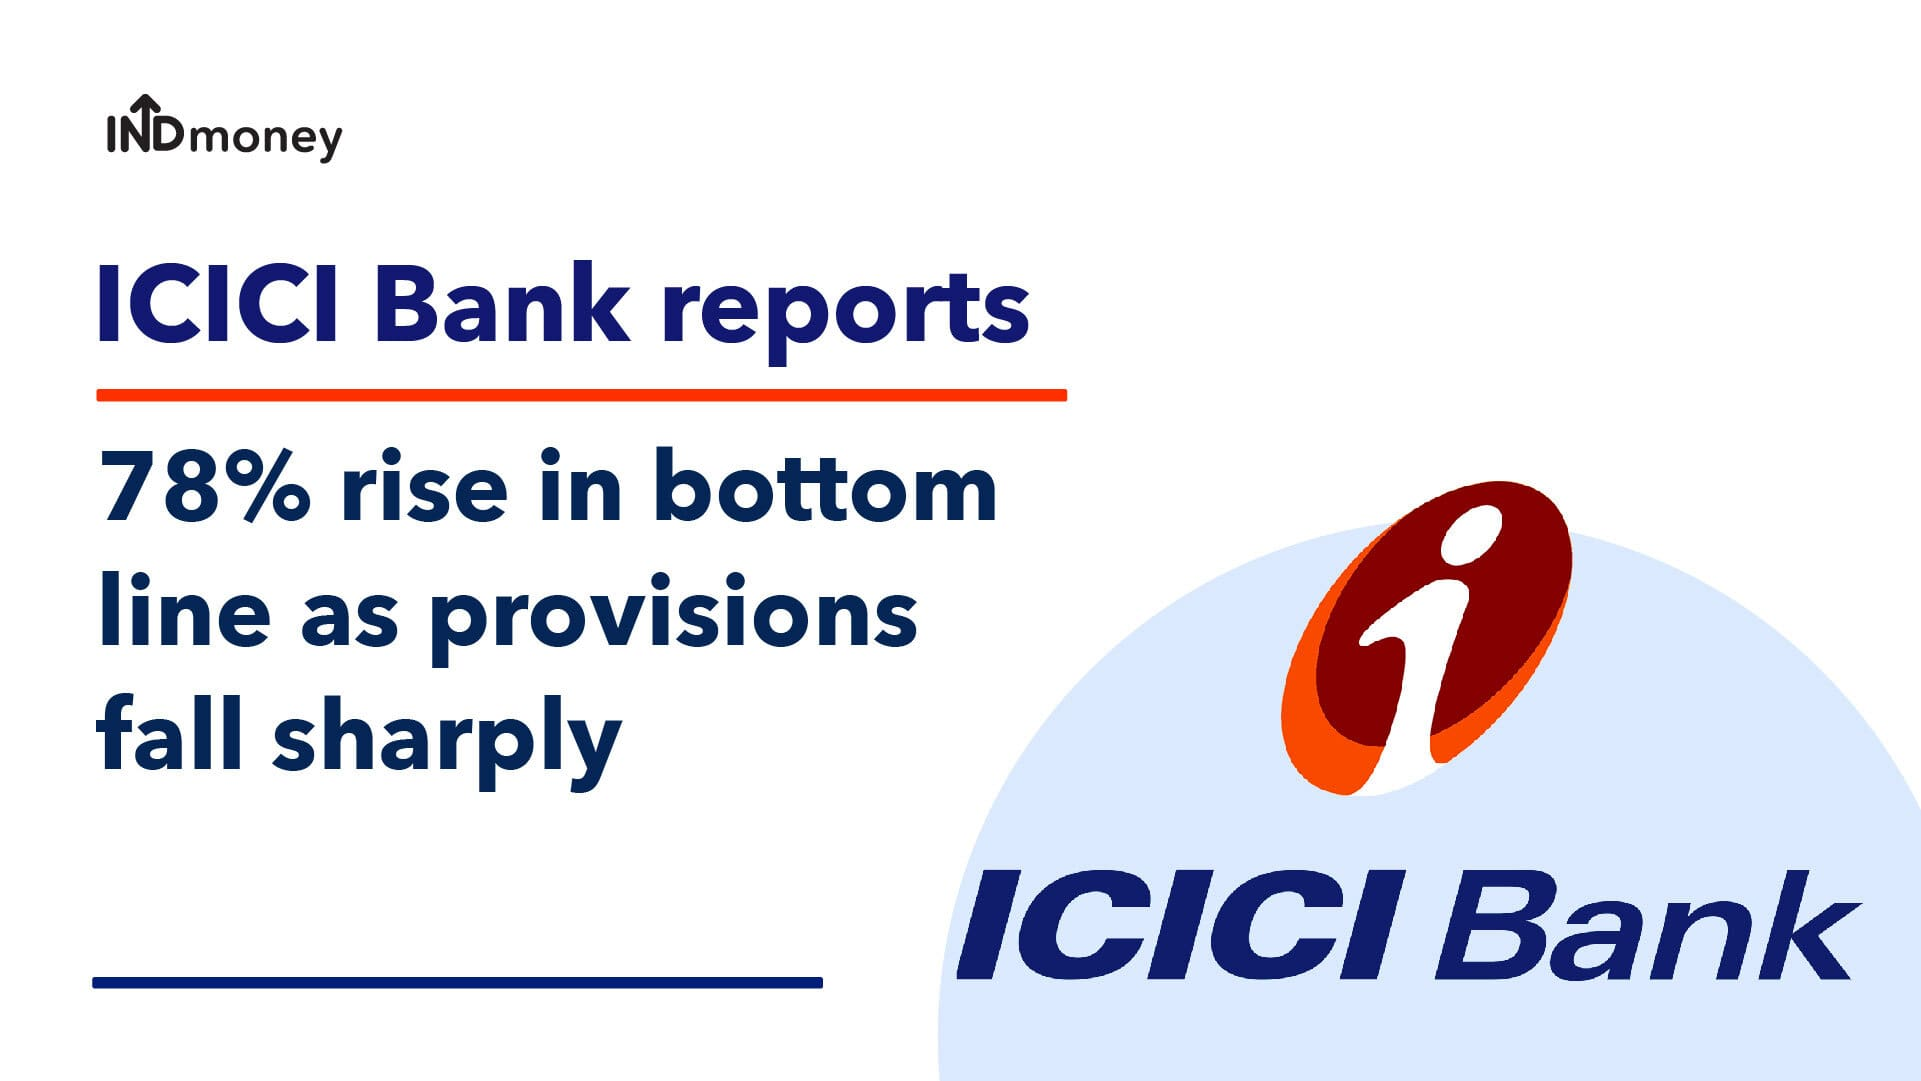 ICICI Bank Results: ICICI Bank Quarterly Results (Q1:2021) Date, News & Earnings